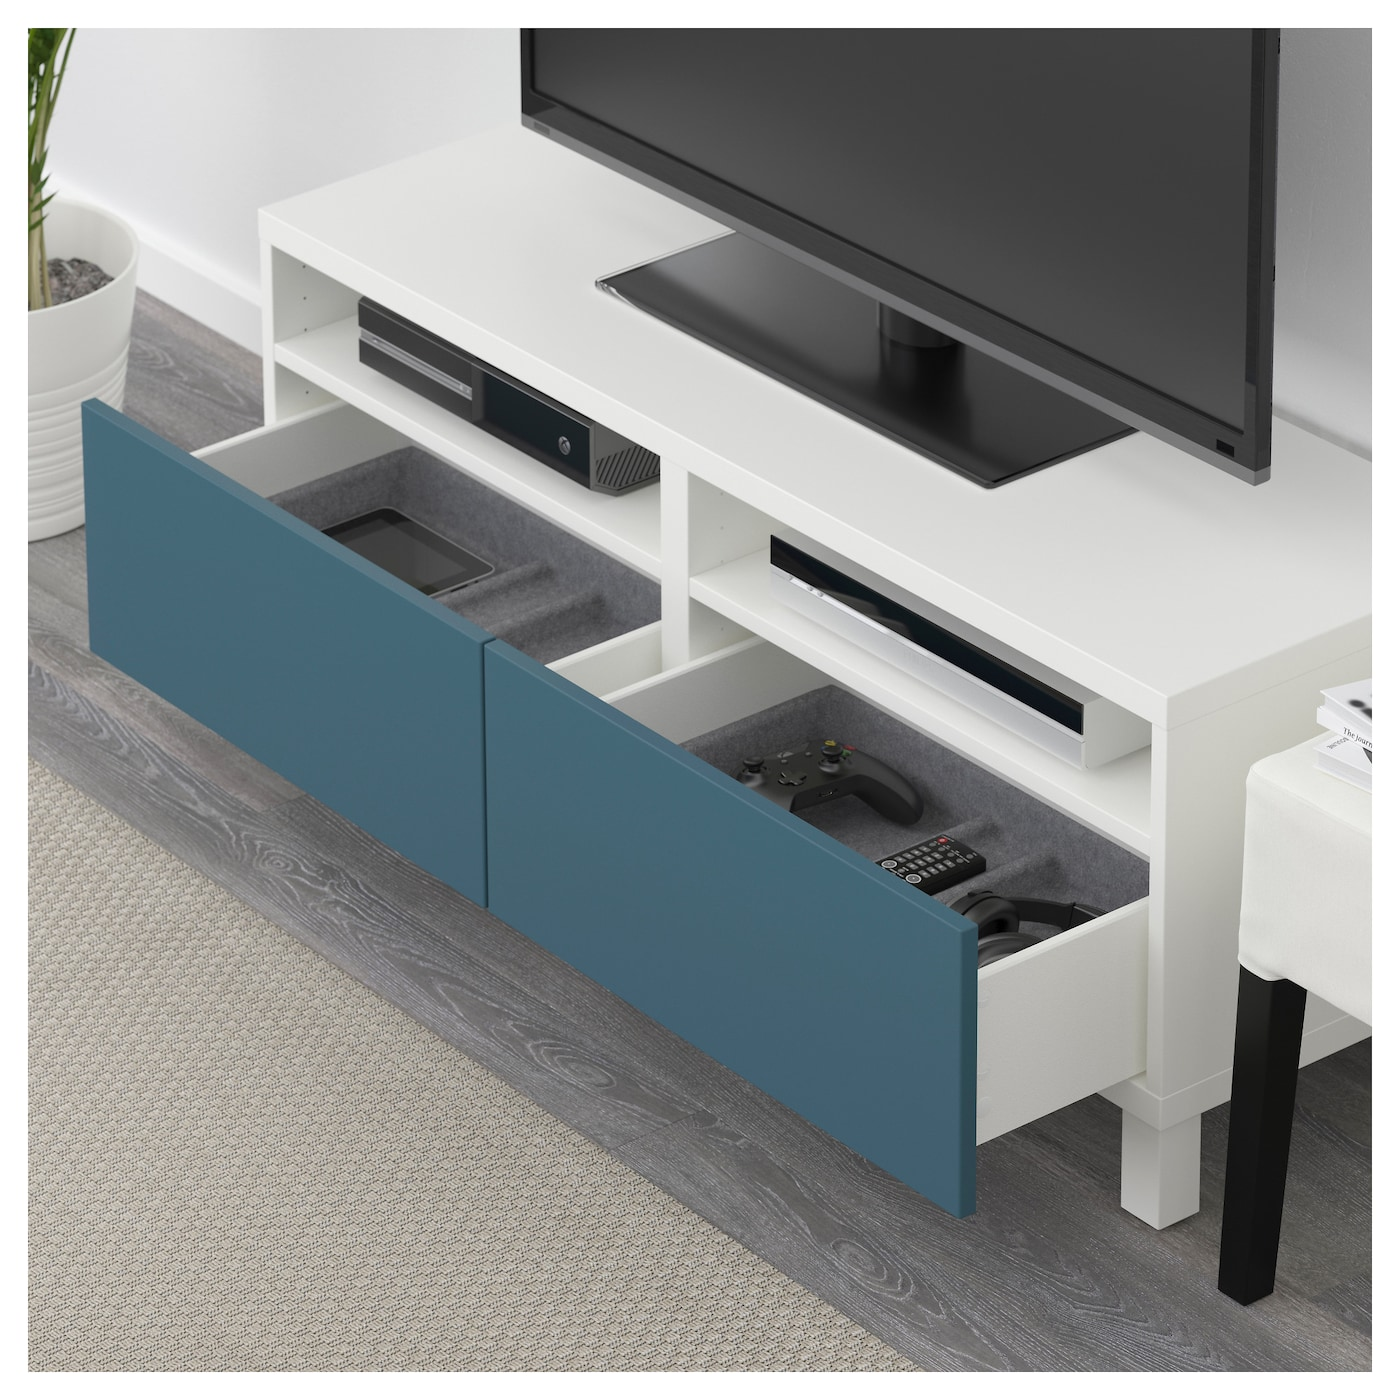 best banc tv avec tiroirs blanc valviken bleu fonc 120x40x48 cm ikea. Black Bedroom Furniture Sets. Home Design Ideas